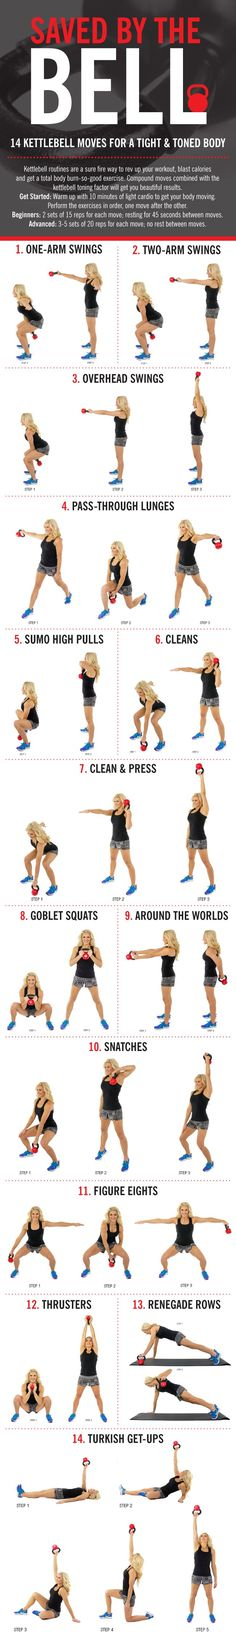 A healthy life: 14 Kettlebell Moves For An All-Over Body Calorie T...